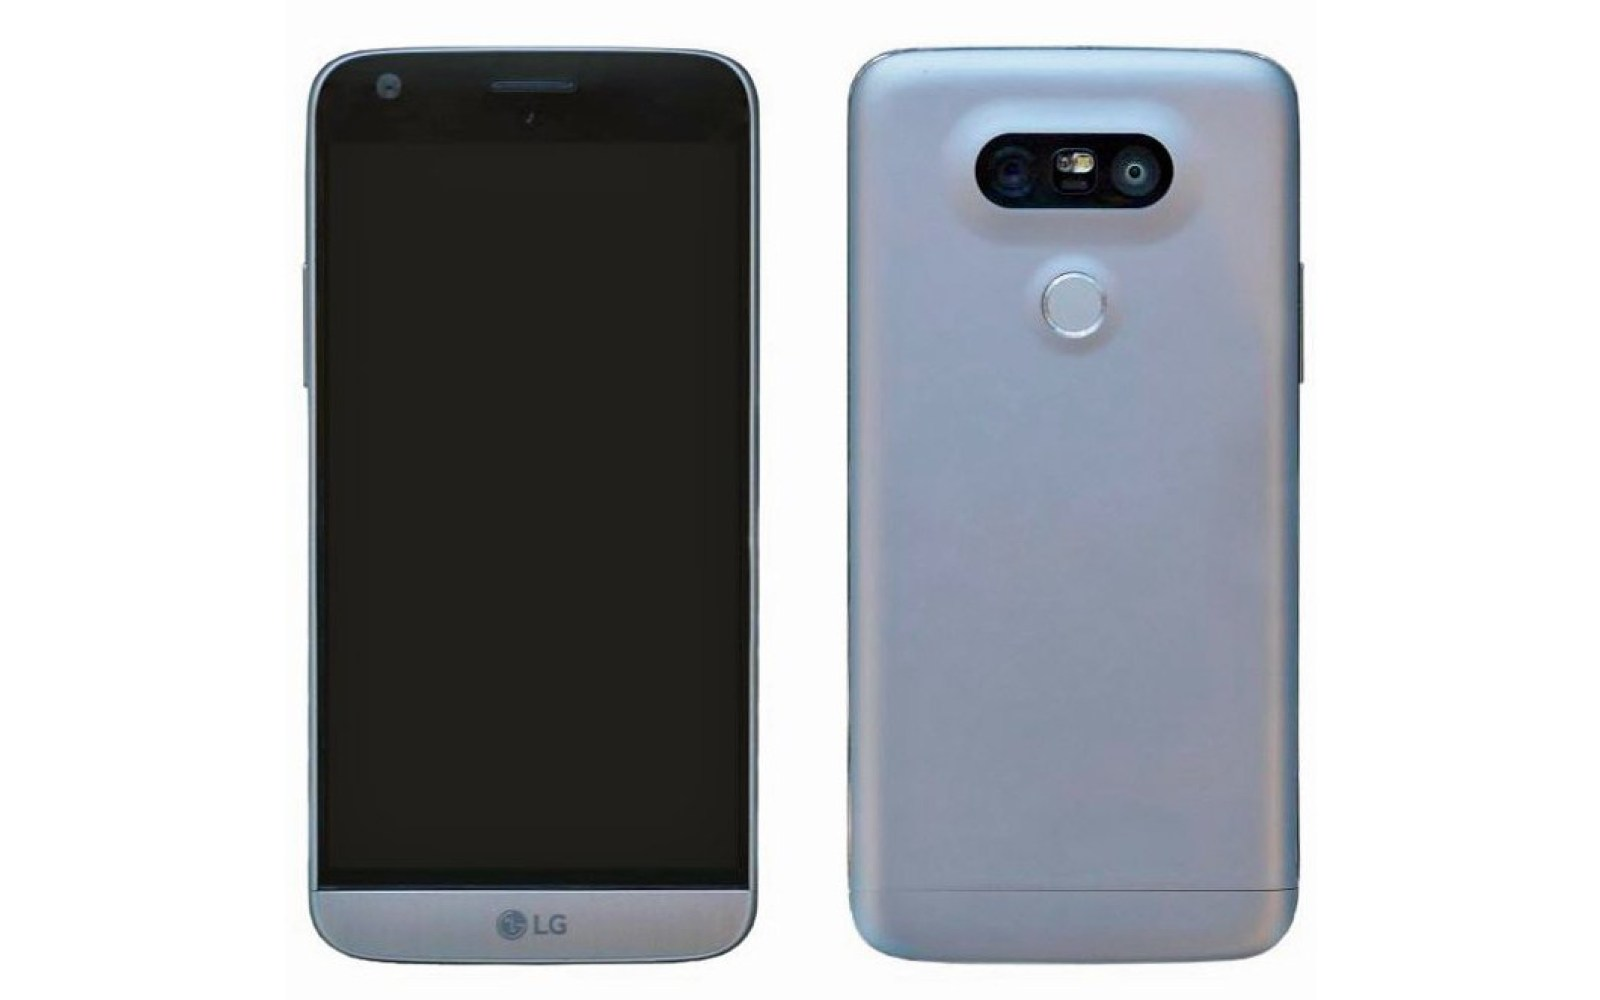 Evan Blass seemingly confirms previous LG G5 leaks with new image